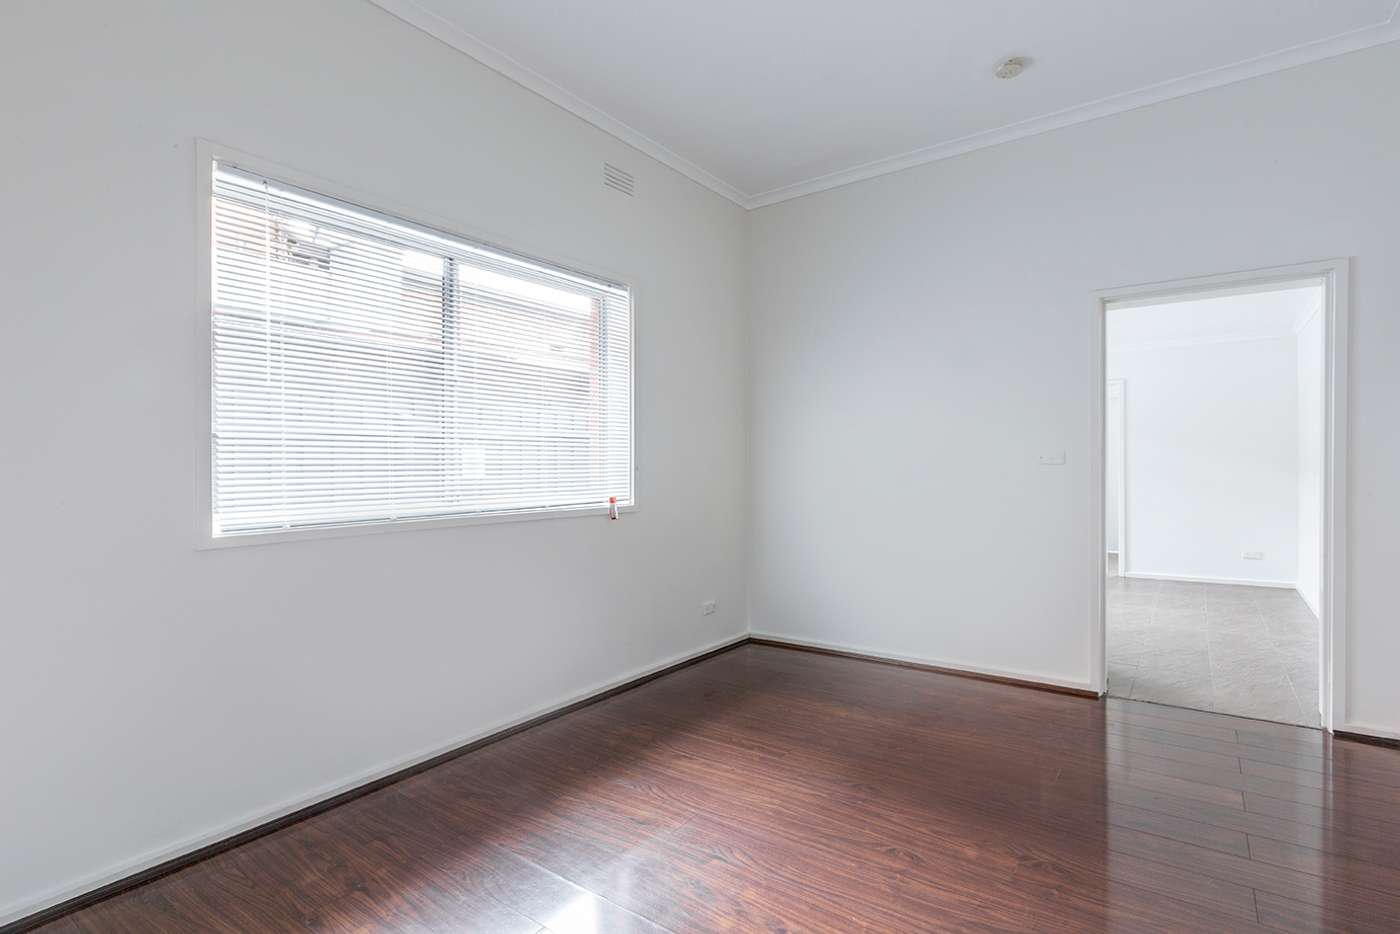 Seventh view of Homely unit listing, 1163A Glen Huntly Road, Glen Huntly VIC 3163